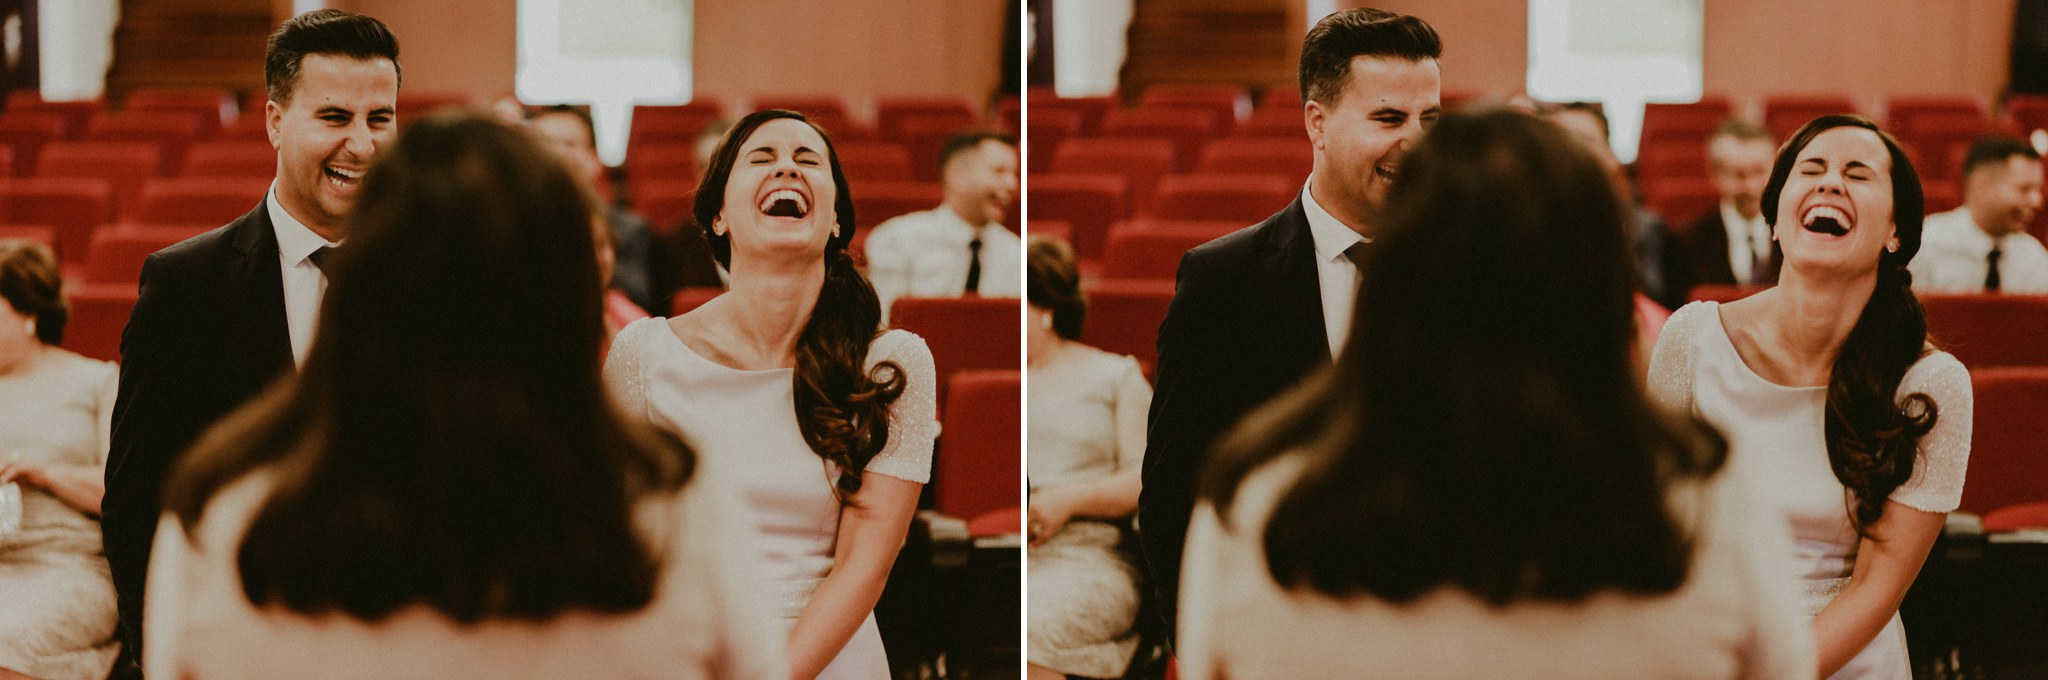 elopement-wedding-photographer-barcelona5